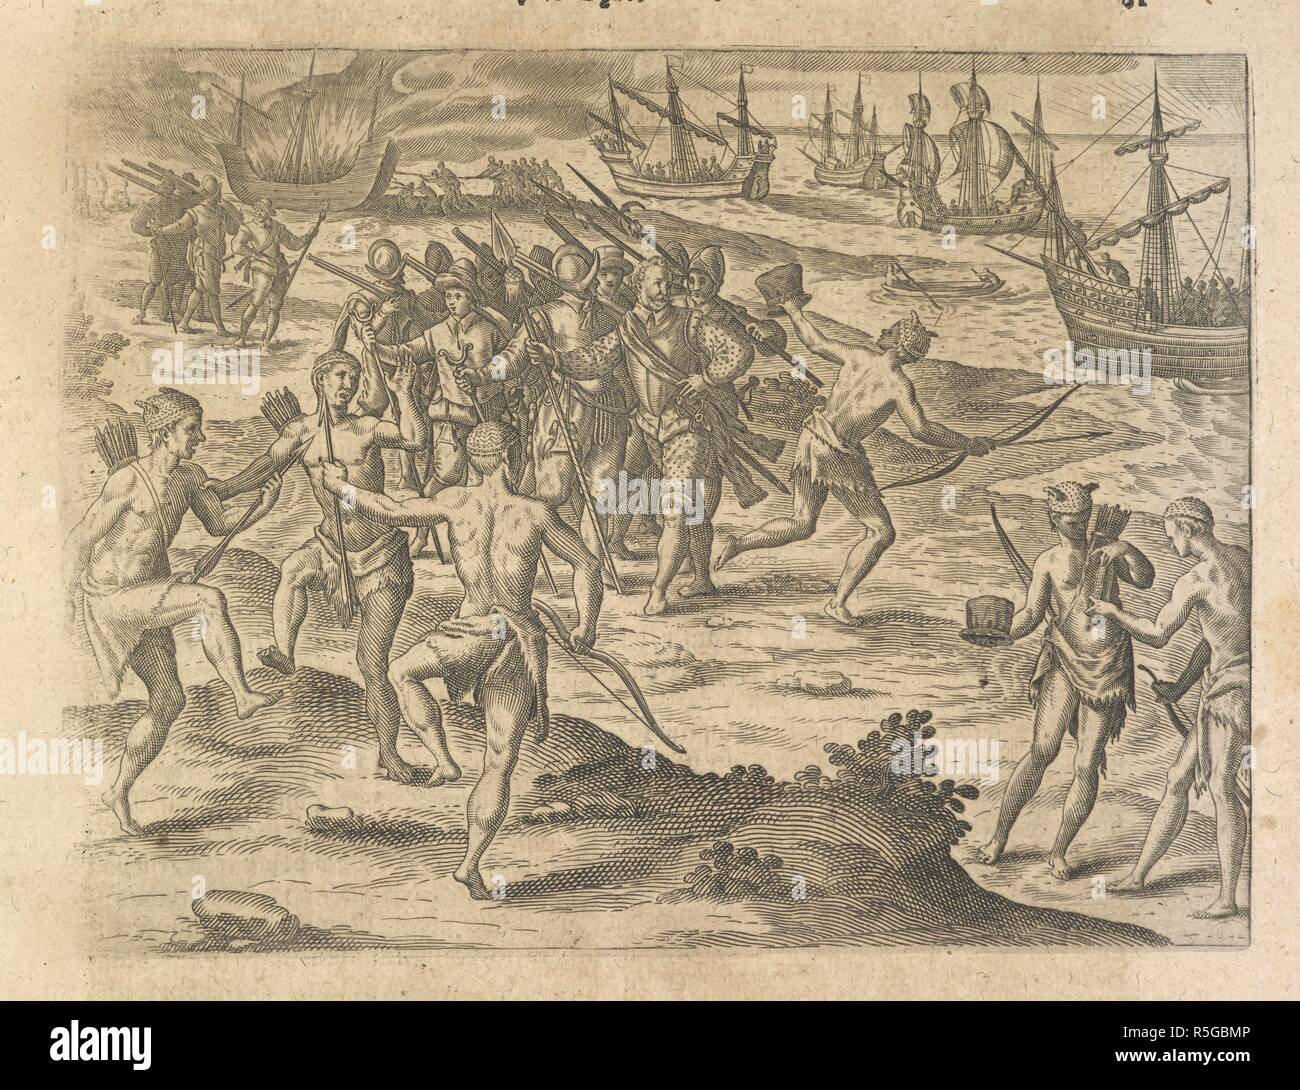 Eurpoean explorers arriving and encountering native Americans. America.  -Part VII.-German. Oppenheim : Bey H. Gallern, 1617. Source: 10003.e.26  p.81.